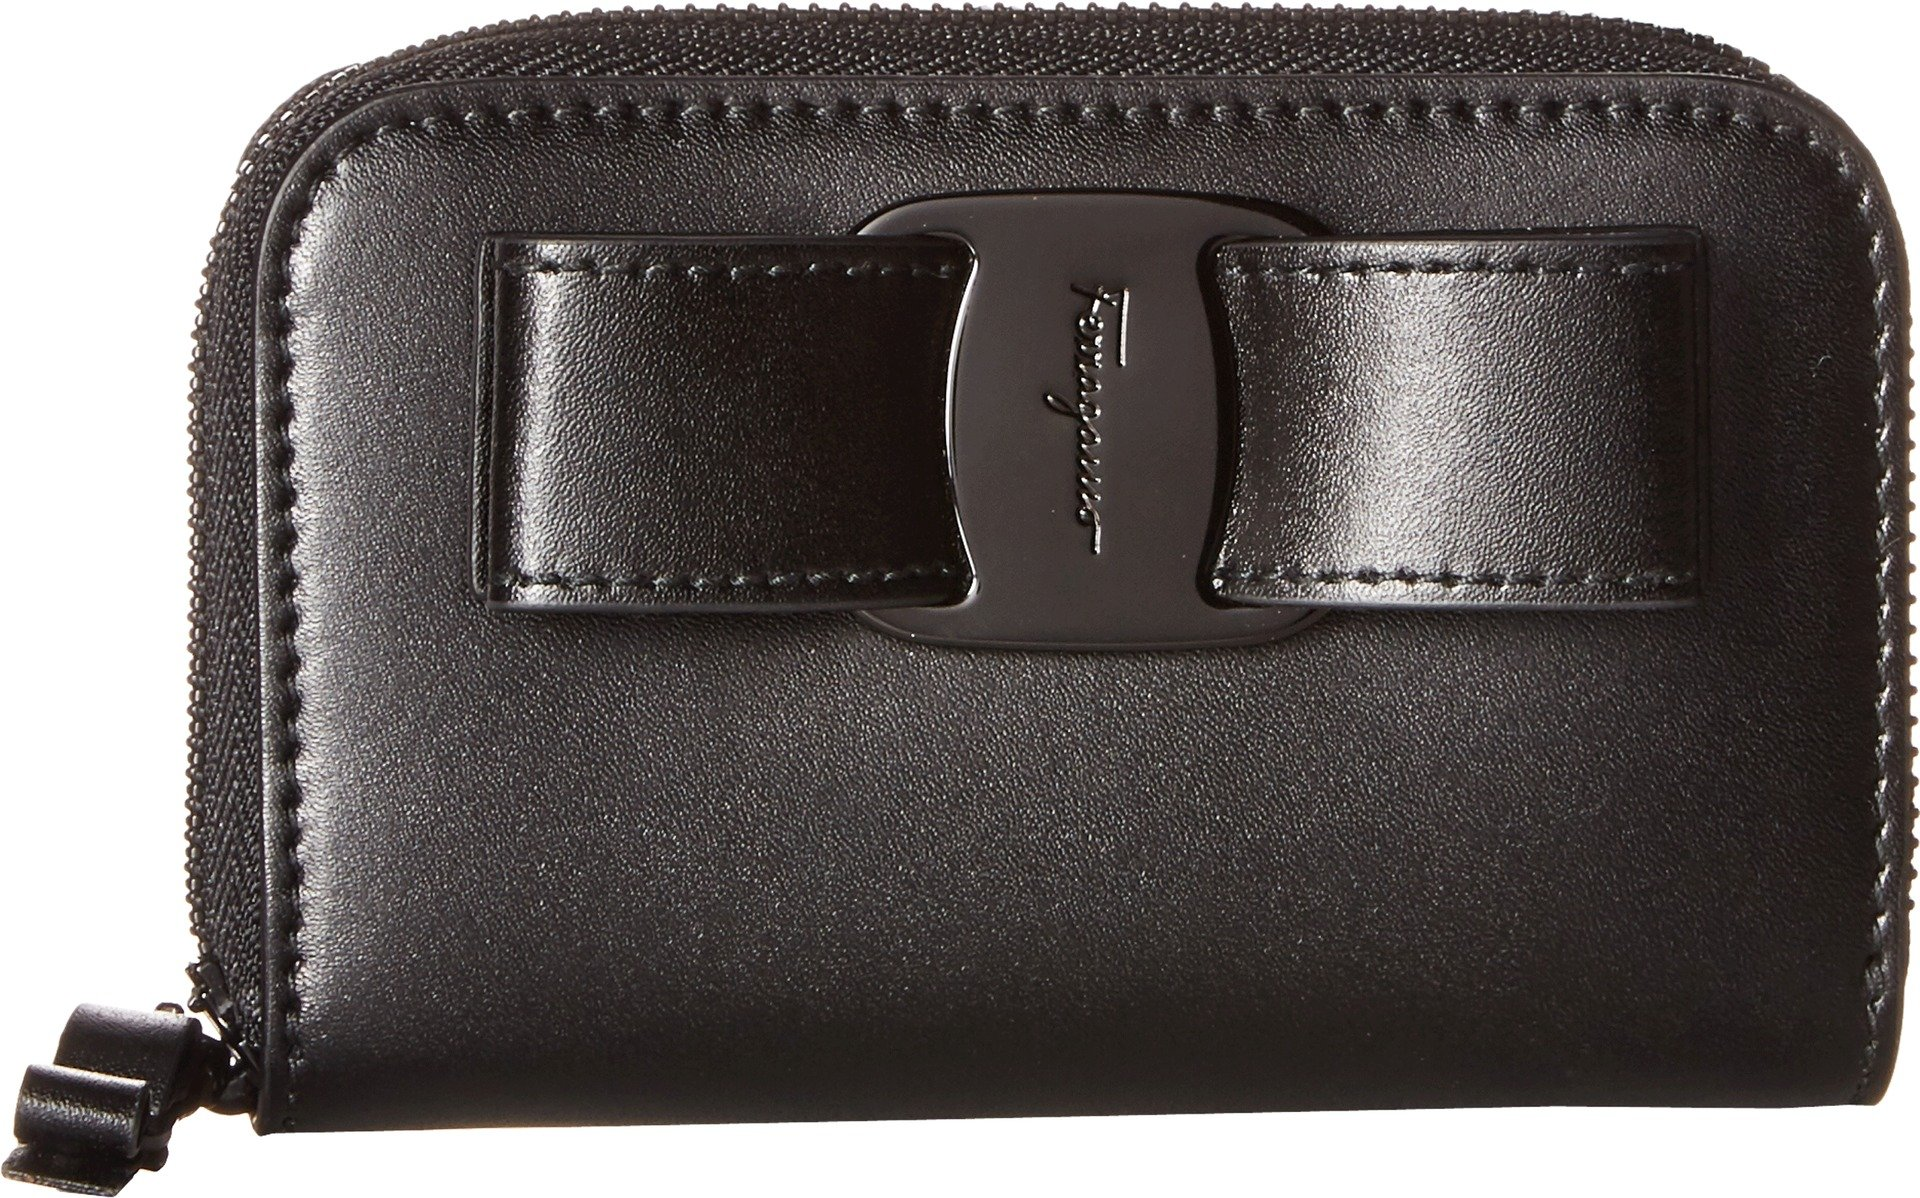 Salvatore Ferragamo Women's Vara Rainbow Zip Around Card Case, Nero, One Size